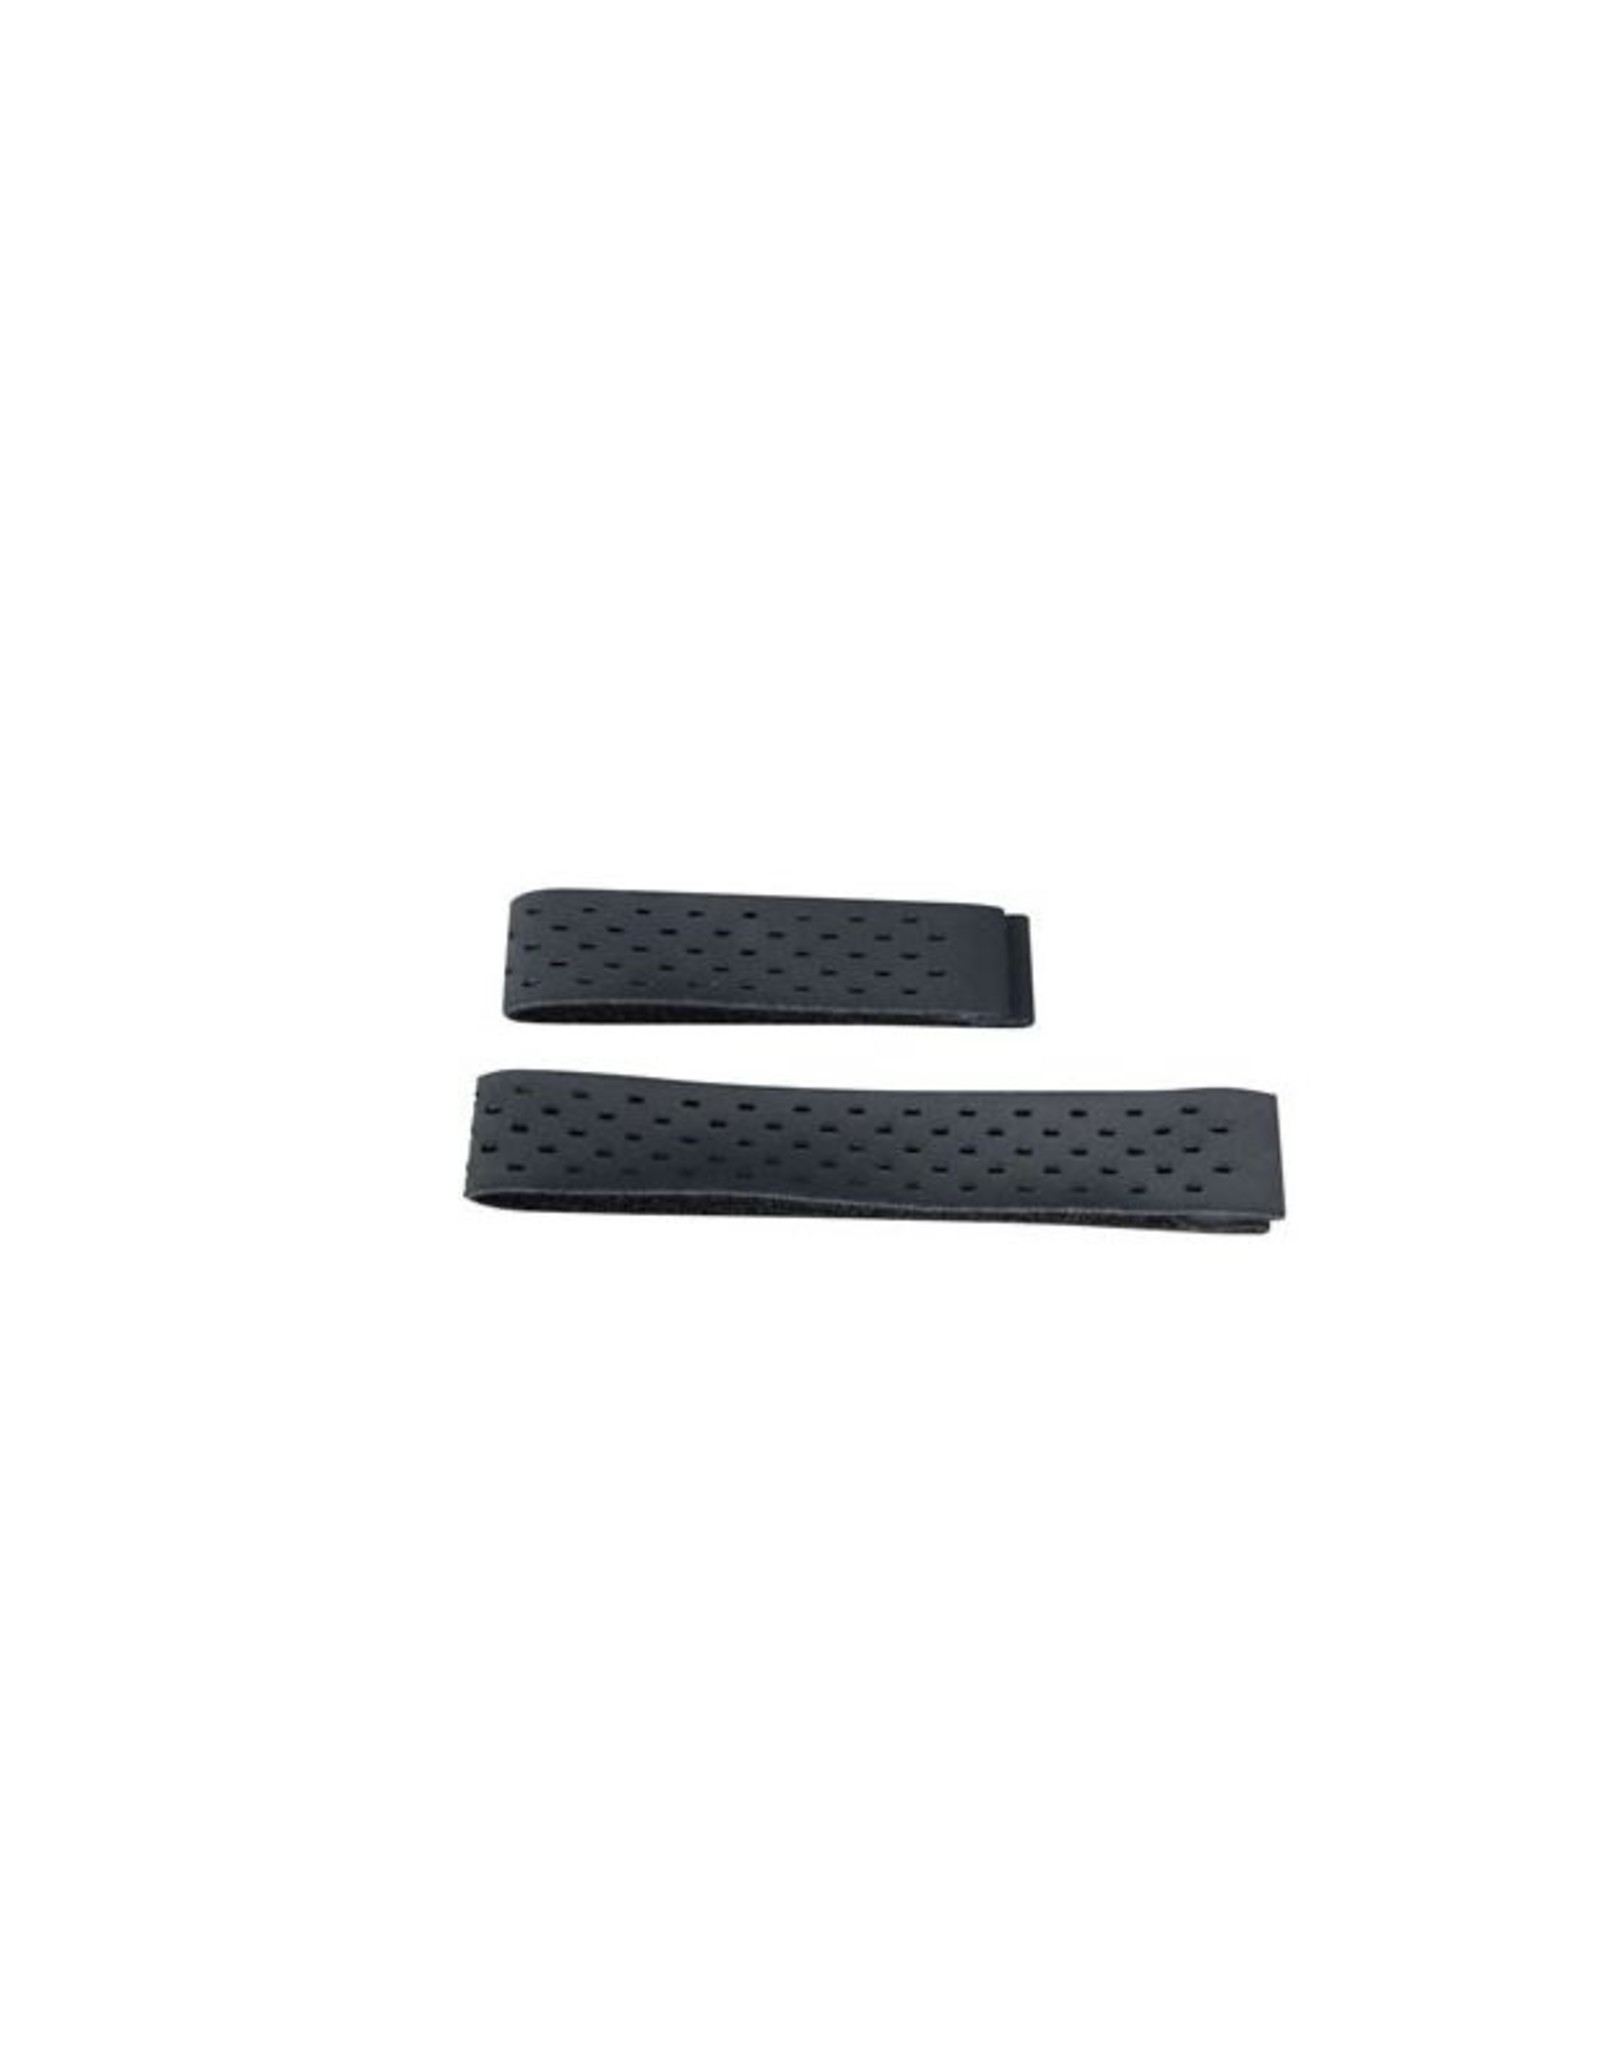 Wahoo Wahoo TICKR FIT Spare Heart Rate Strap